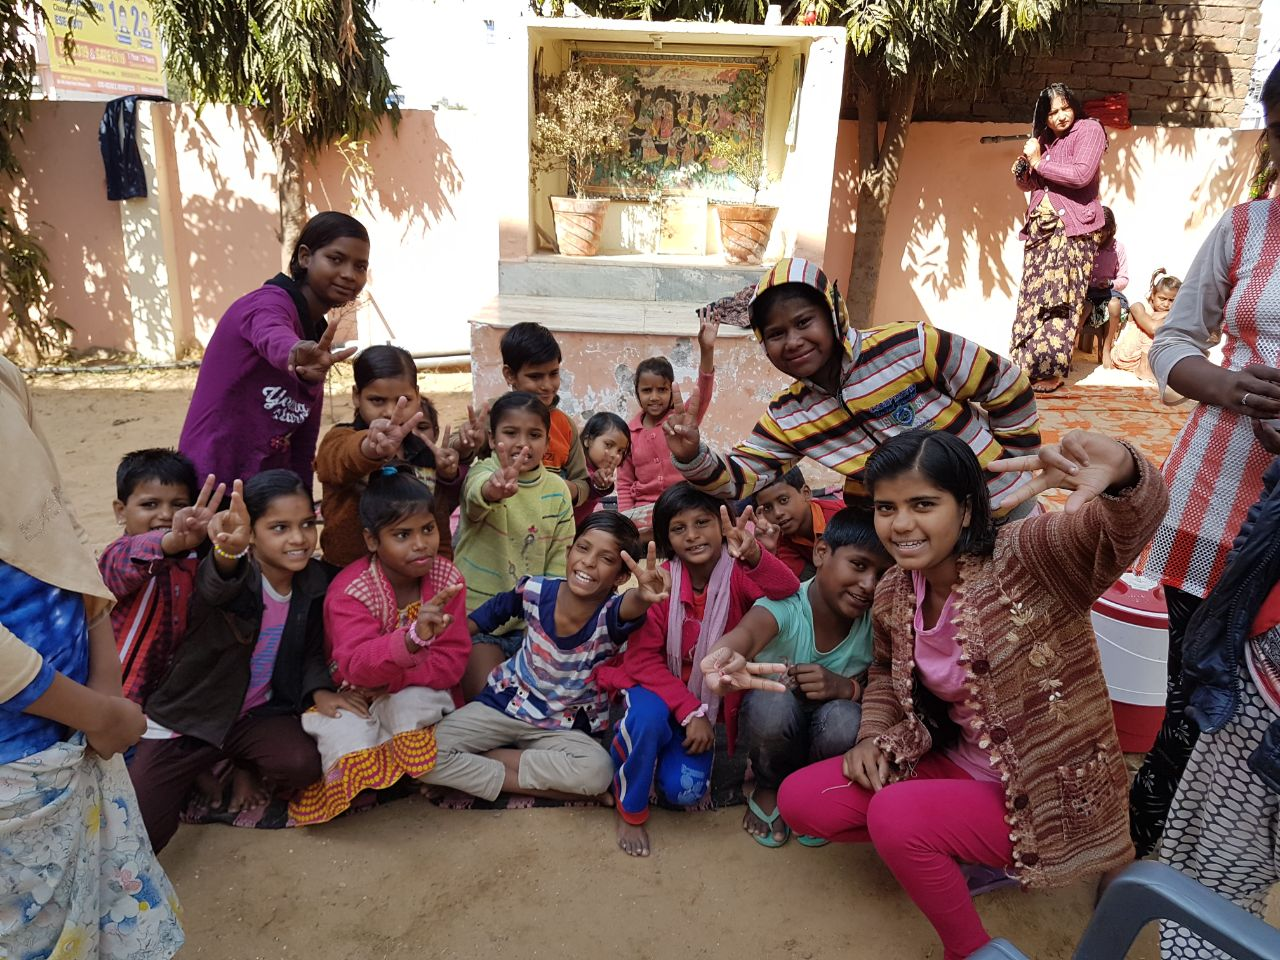 world's education for kids - Kinder in Rajasthan - Gruppe